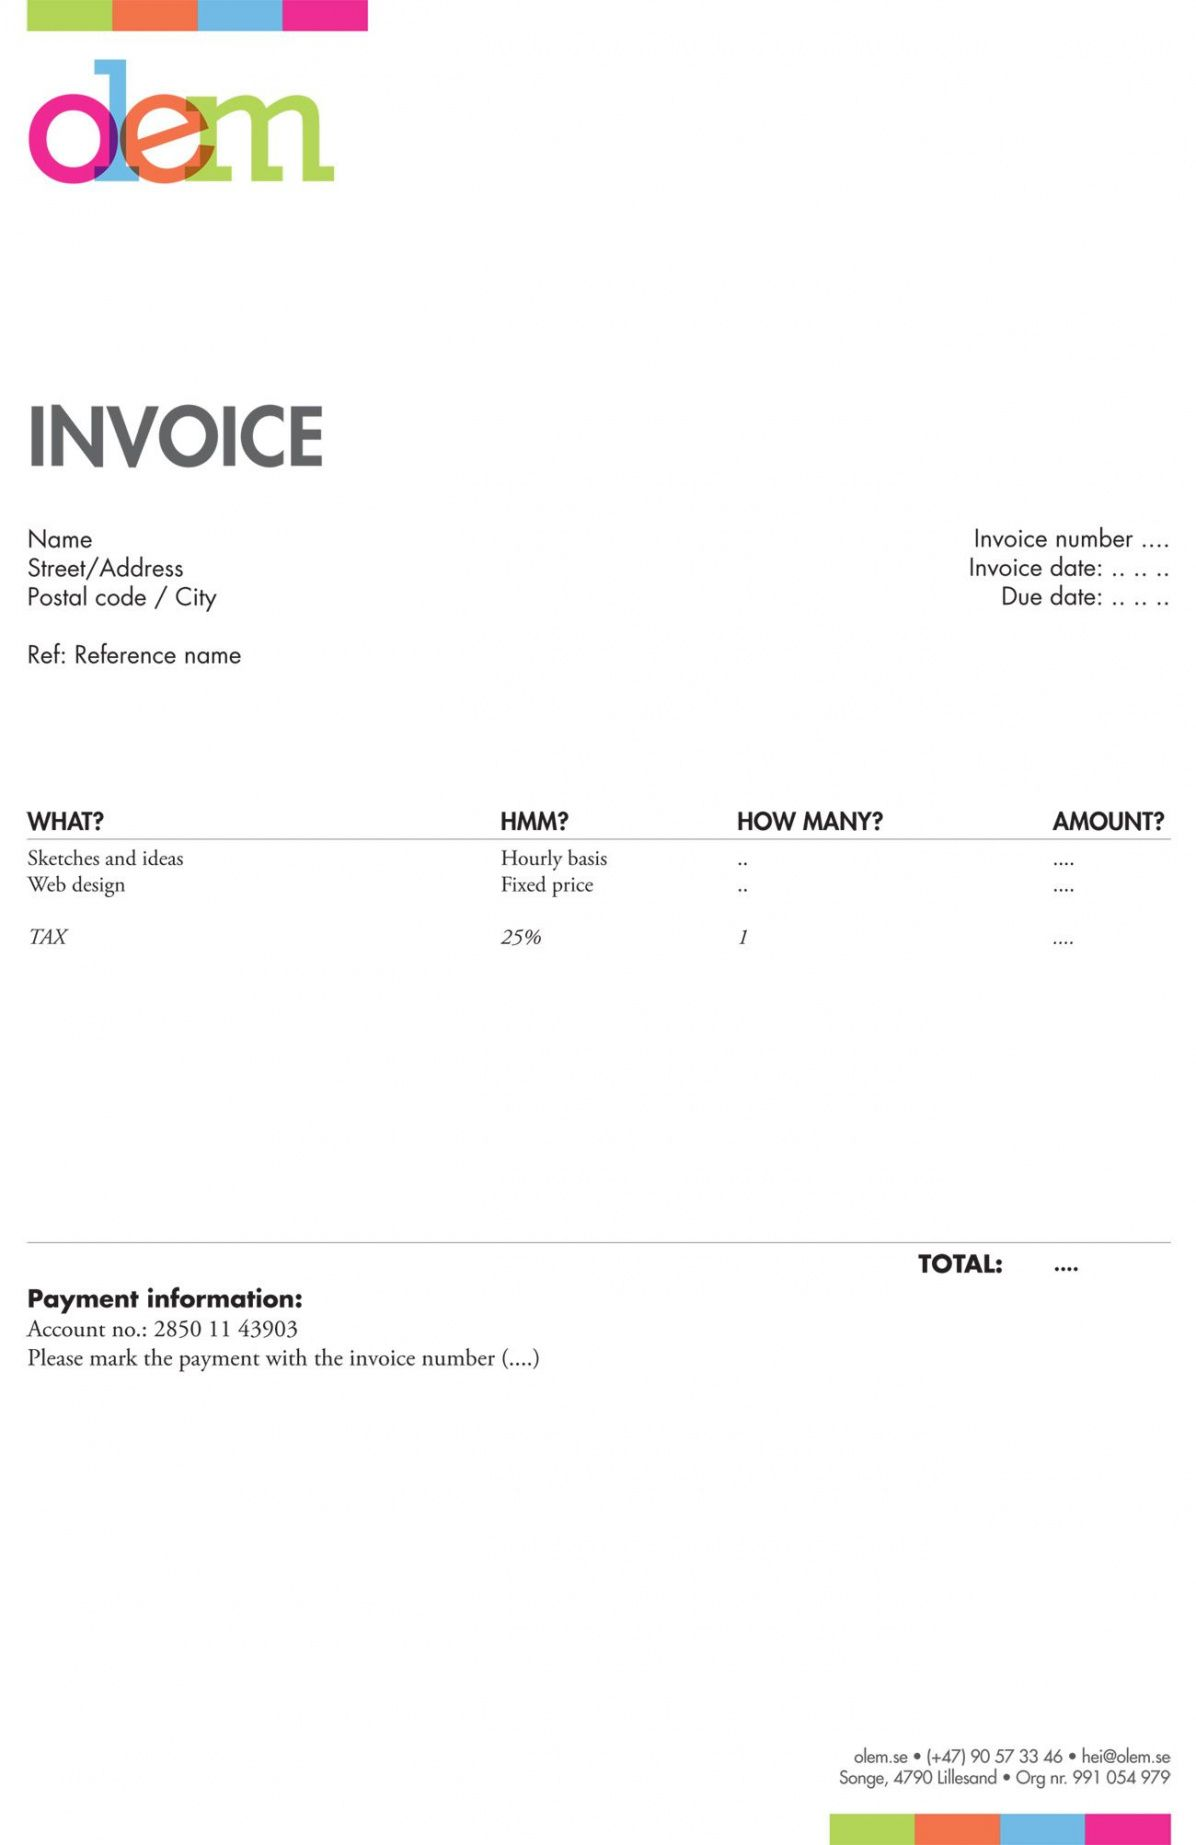 printable invoice like a pro: design examples and best practices | biz cards graphic design freelance invoice template